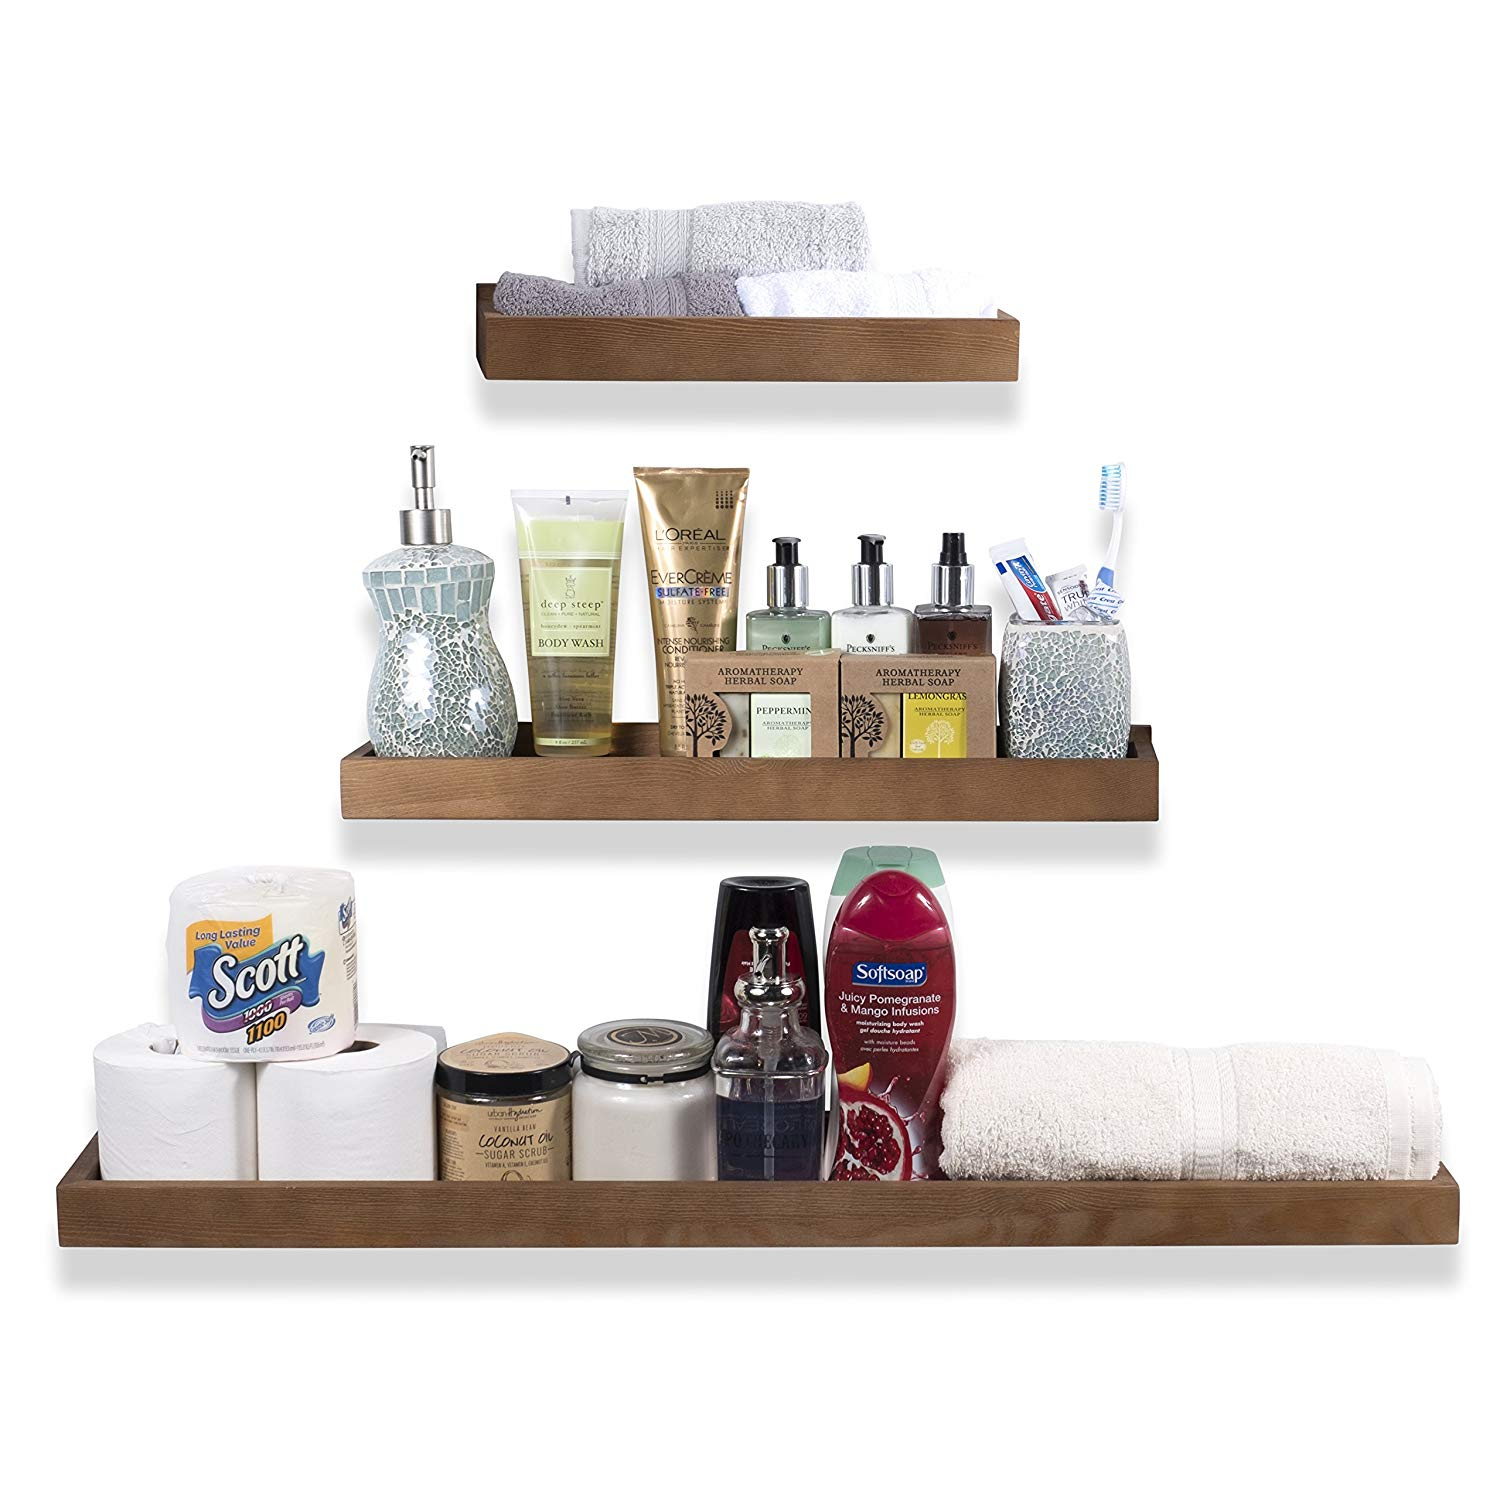 wallniture philly varying sizes floating shelves trays bookshelves nursery and display bookcase modern wood shelving for kids room wall mounted glass corner tile shower antique